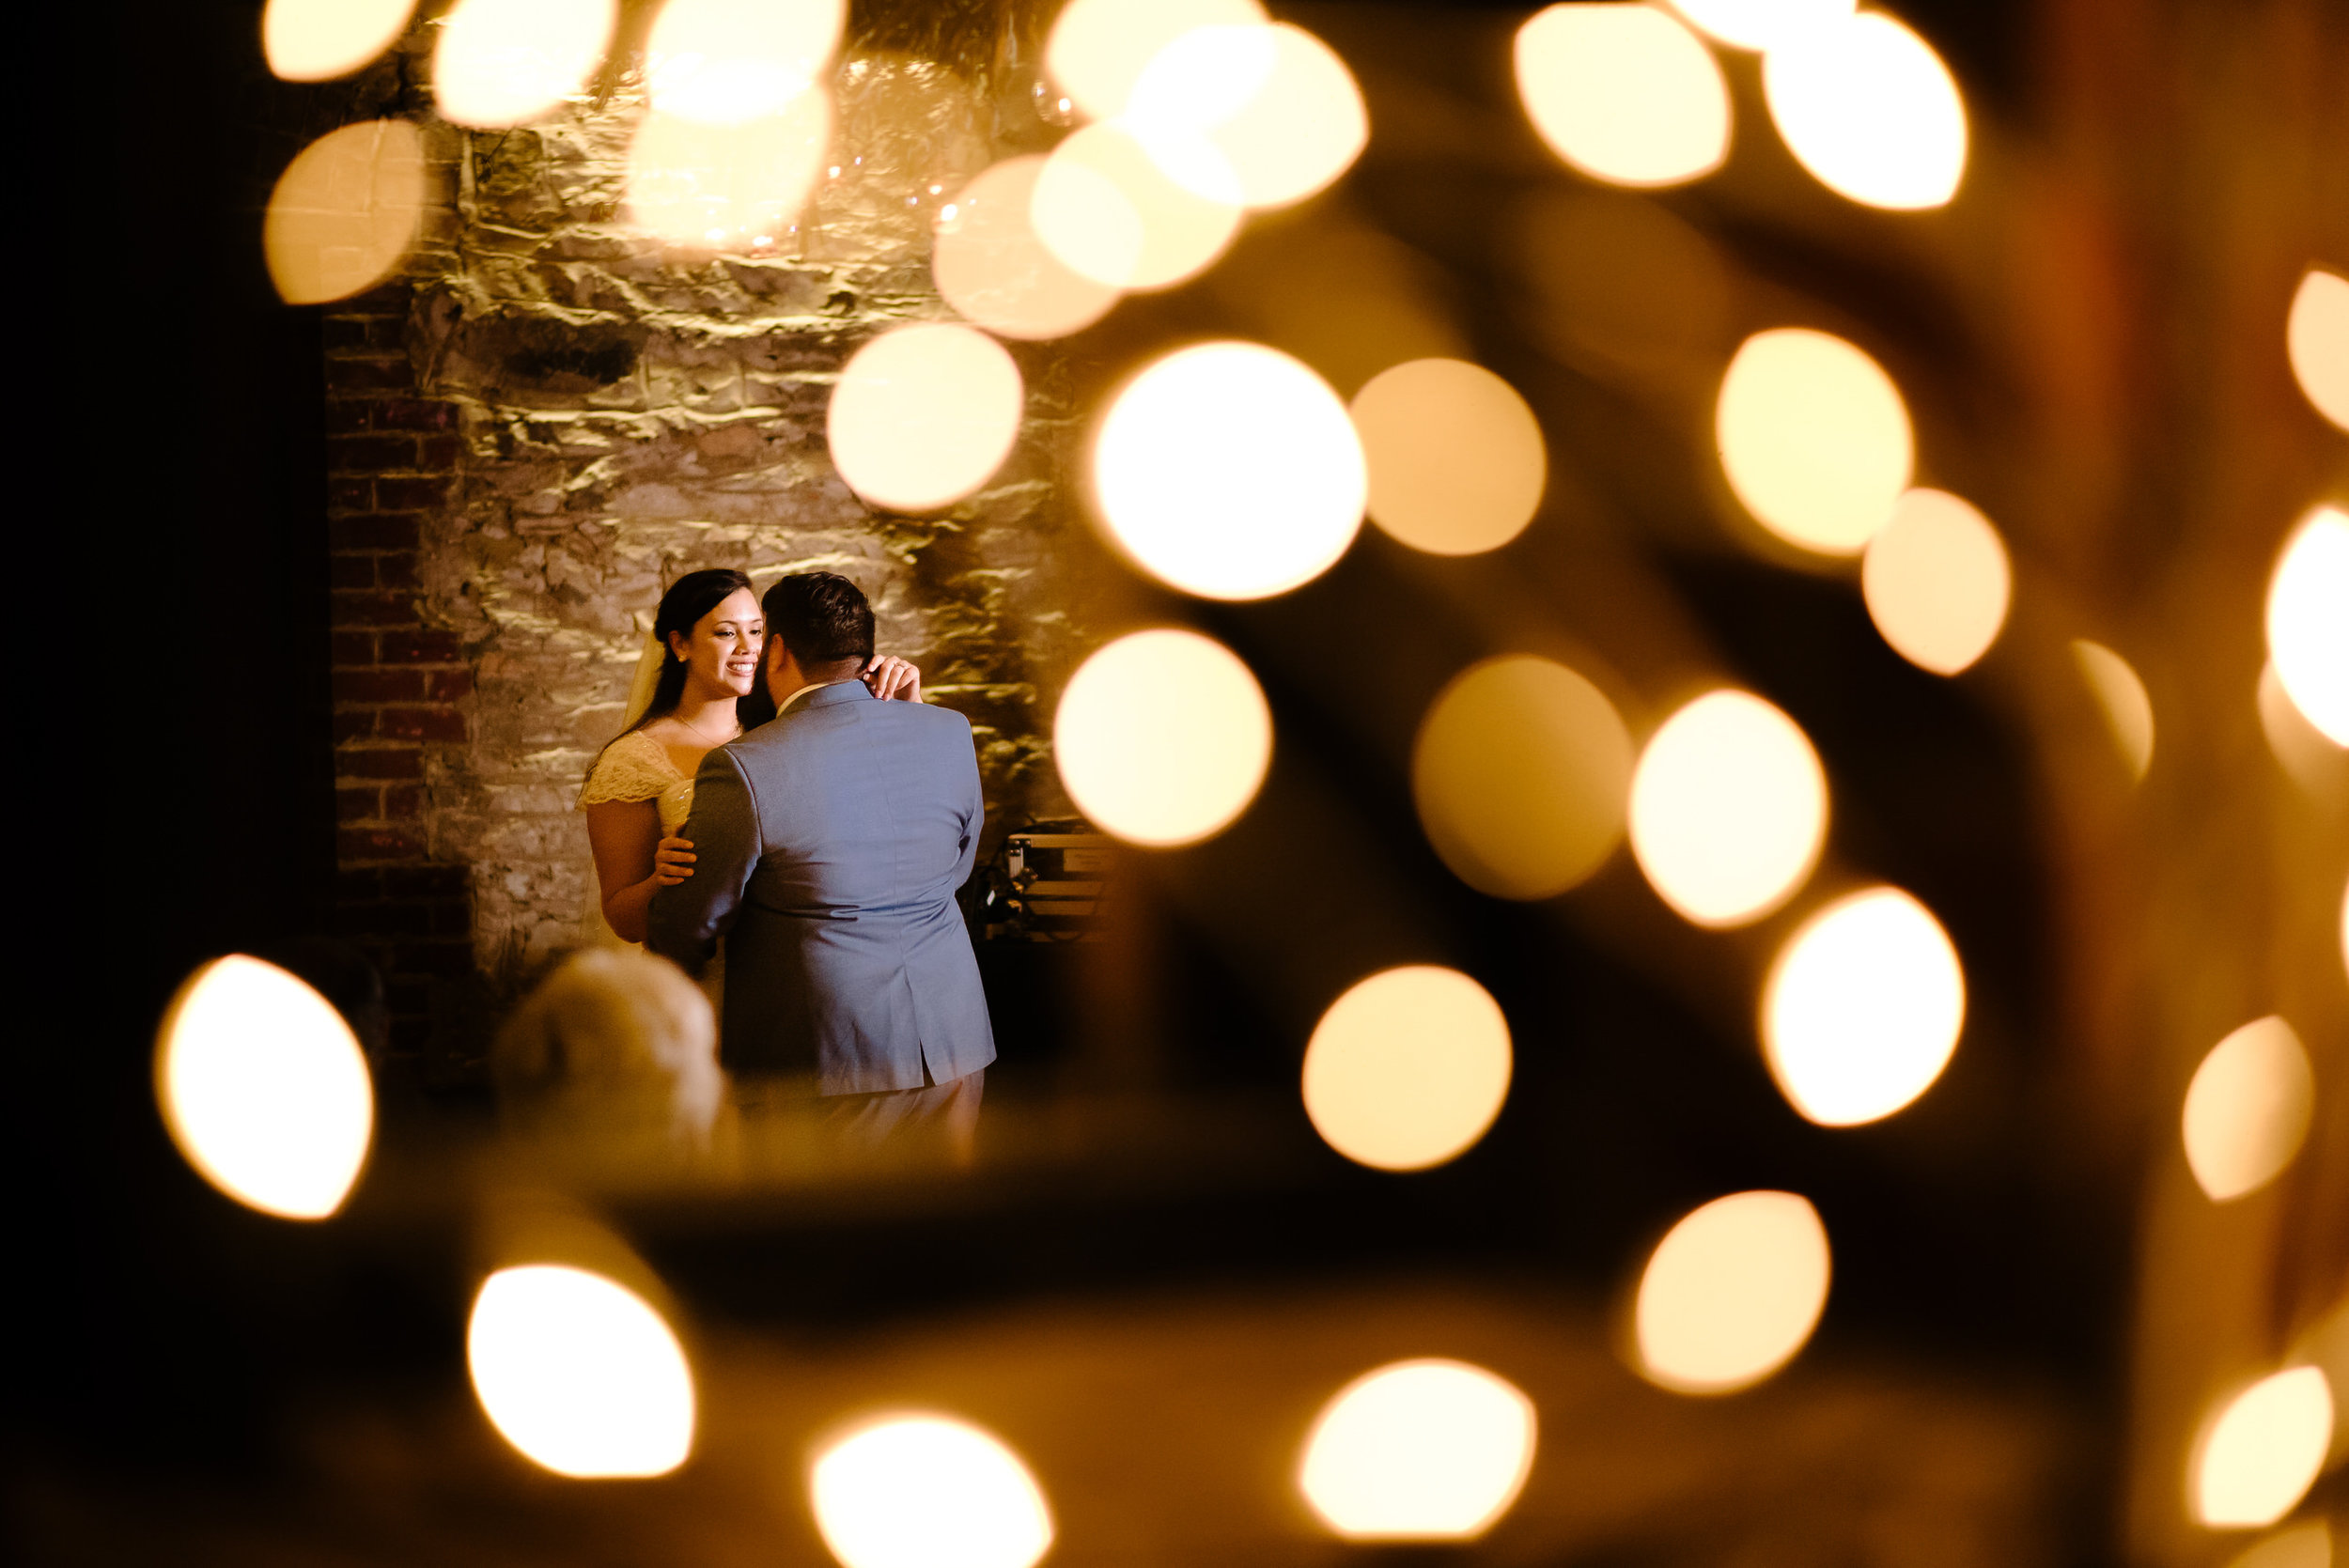 Chateau_Dore_Wedding_Photography_Justin_and_Jim-251.JPG